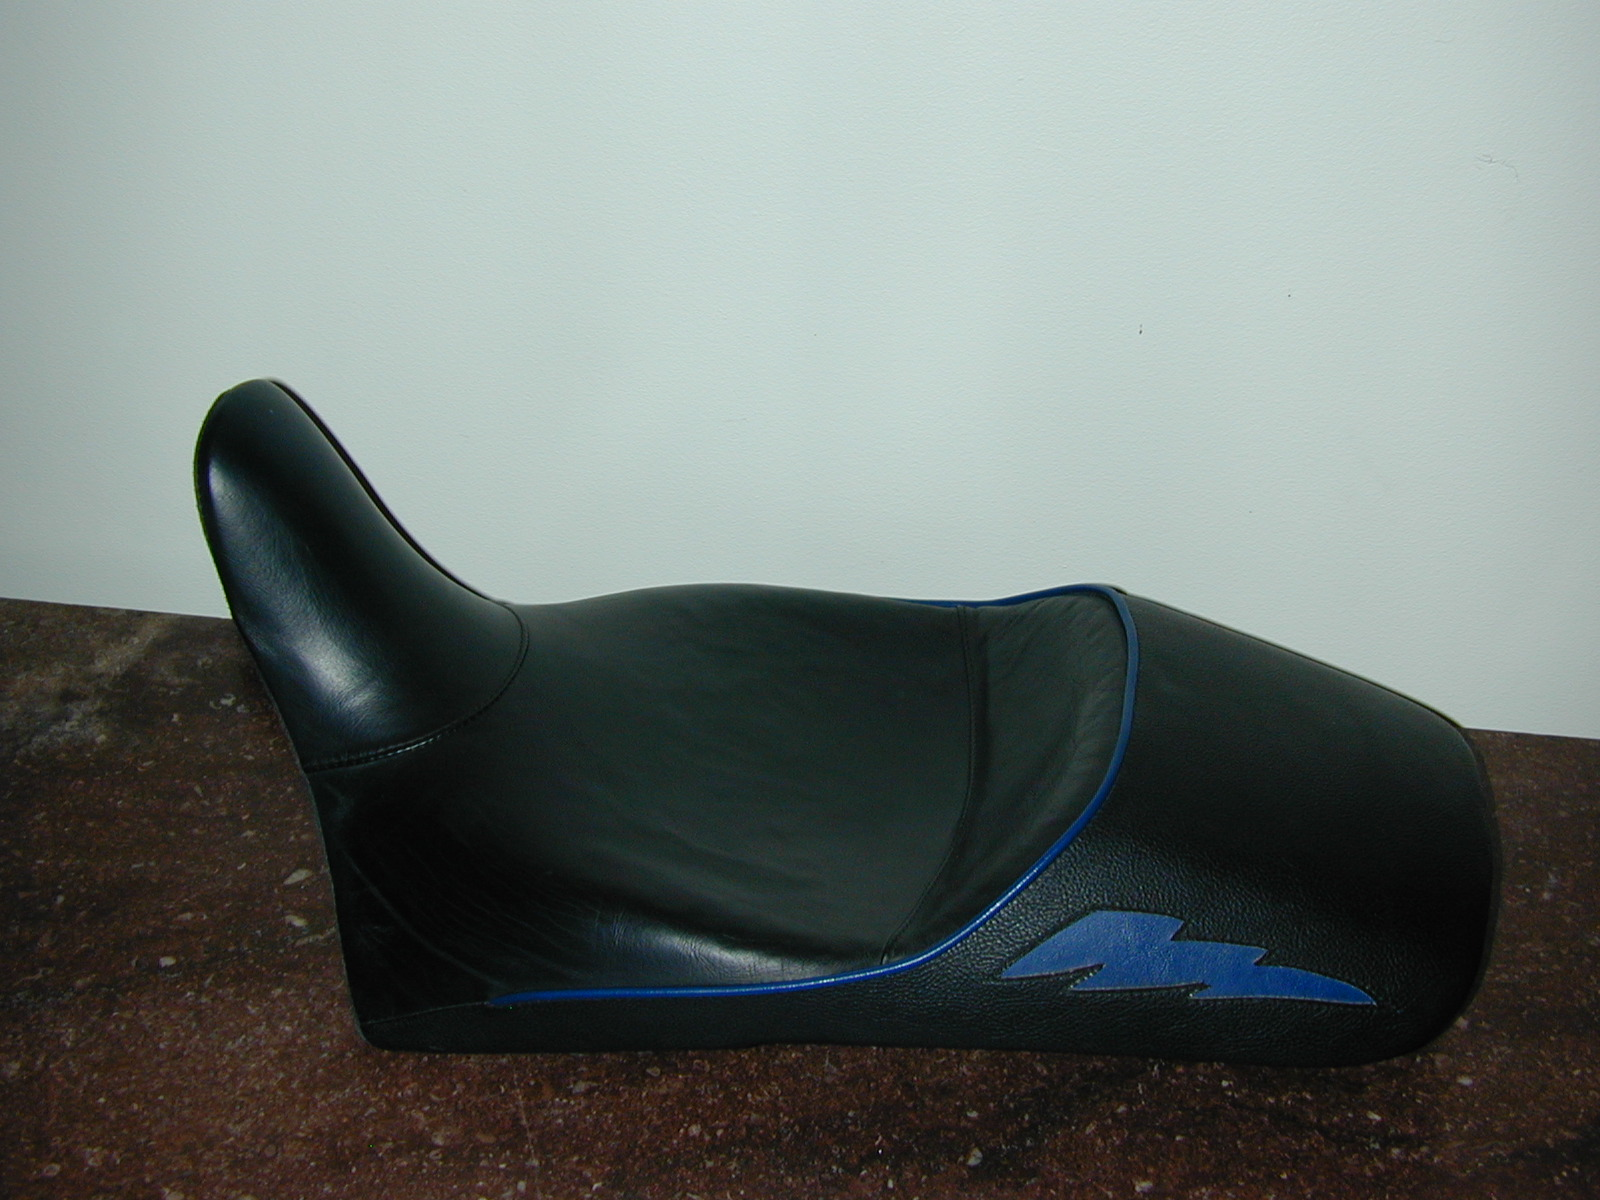 S2 Corbin with Blue Piping & Blue Flames